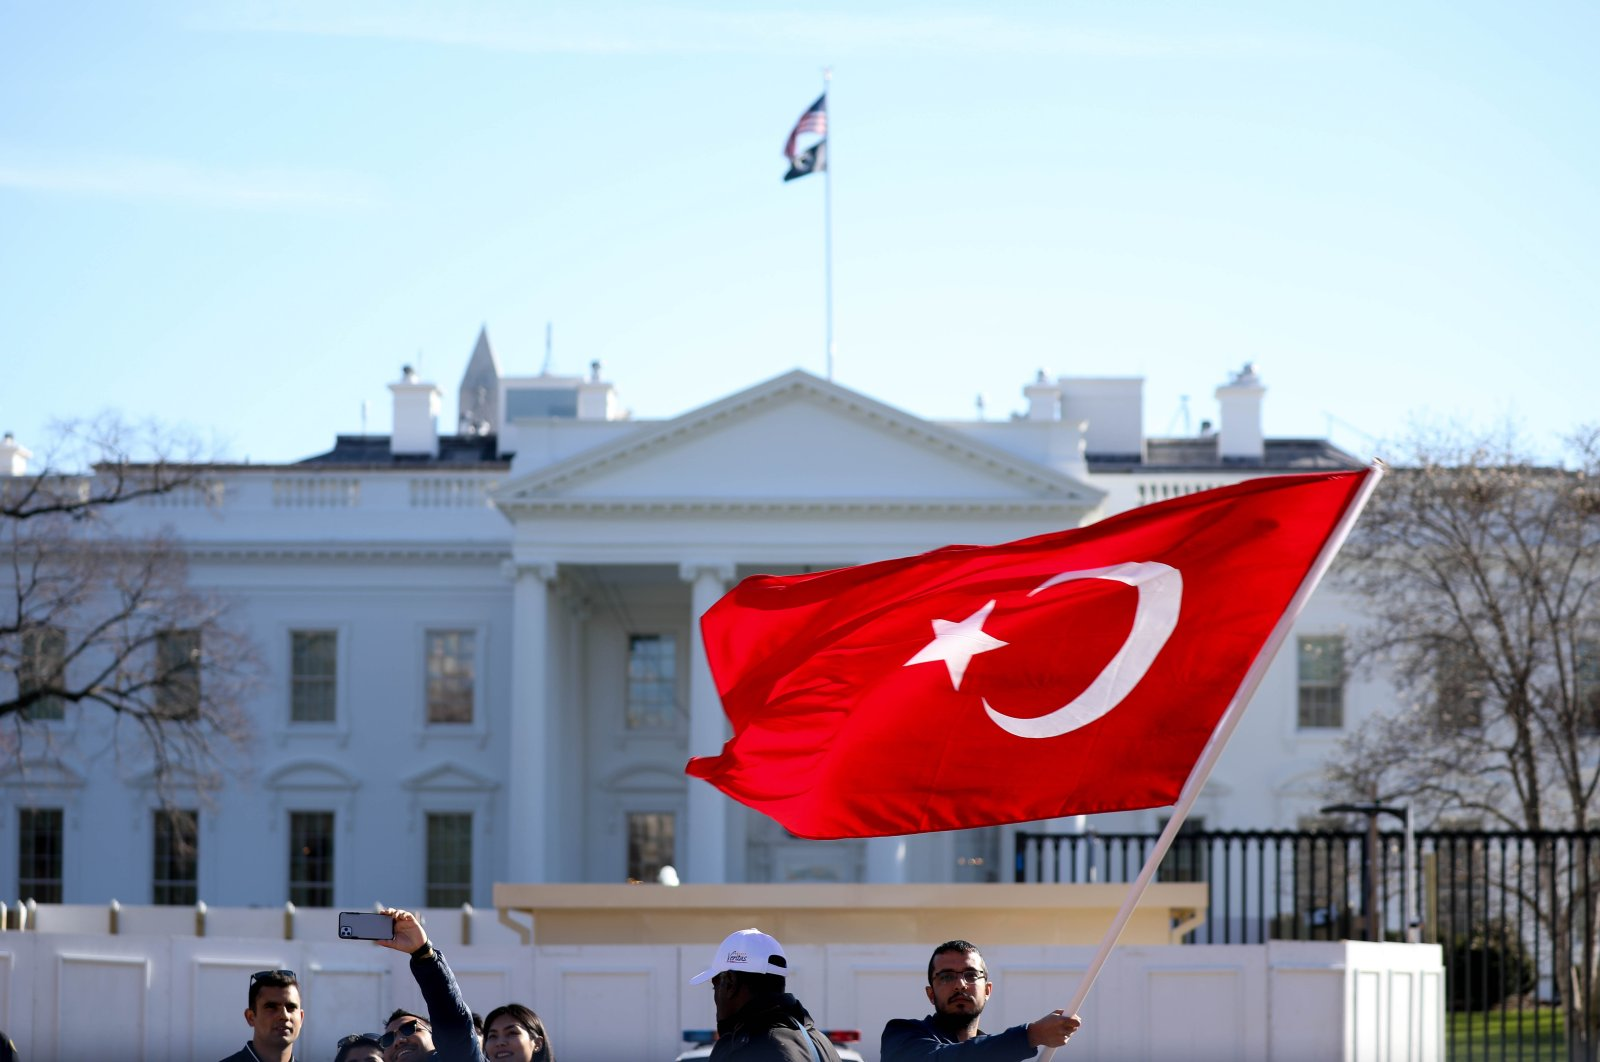 A group of Turkish-American people protests in front of the White House in Washington, D.C. in this undated file photo (AA File Photo)